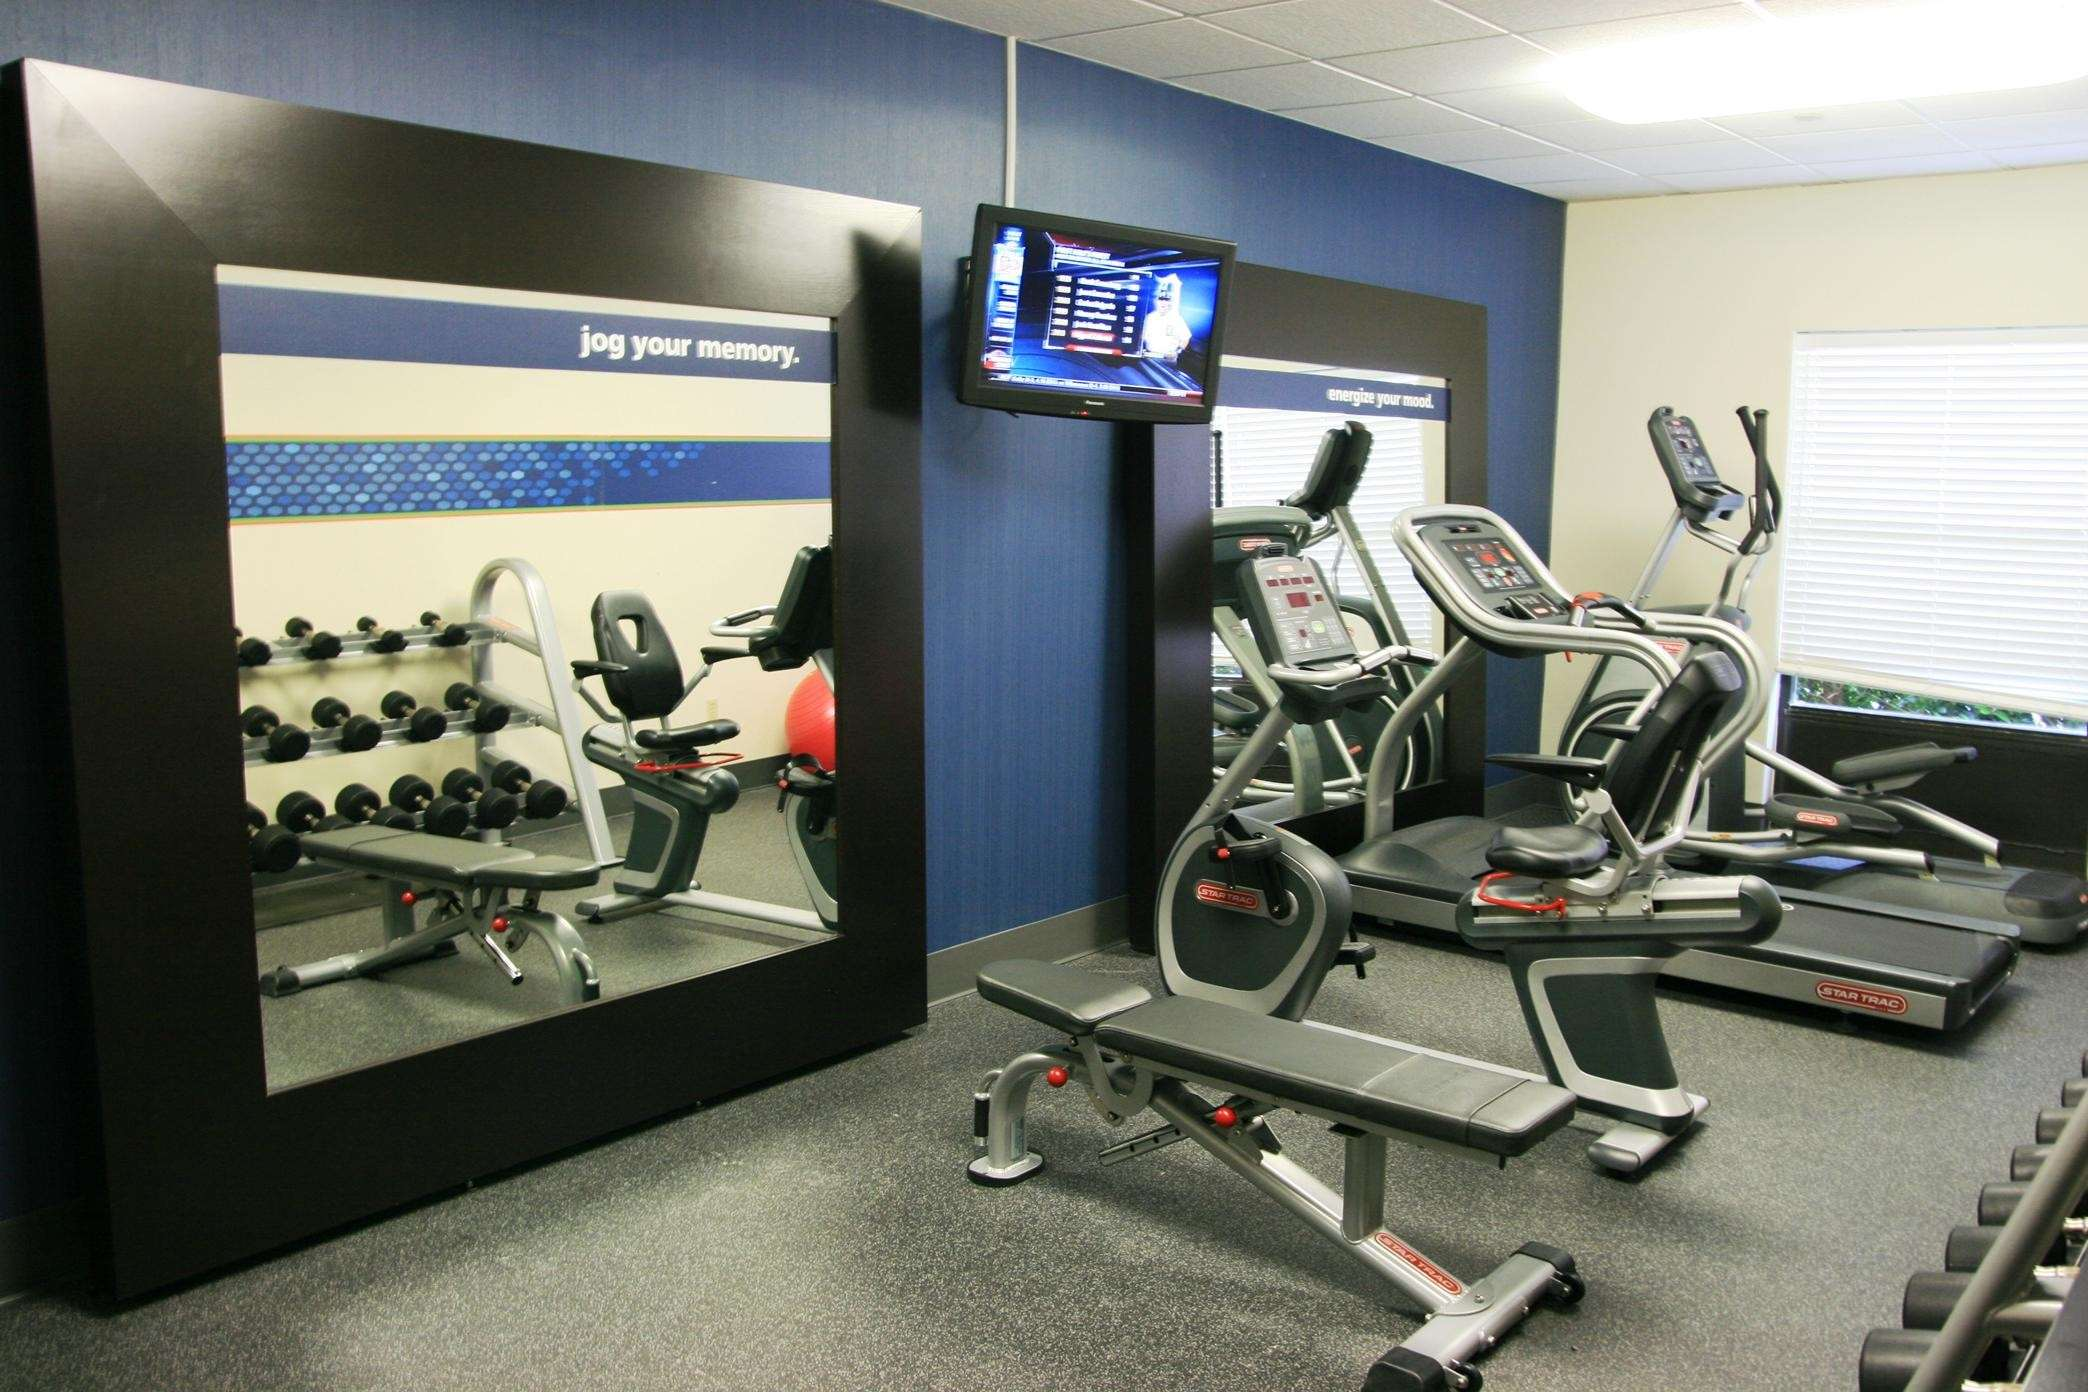 Fitness Room Treadmills and Weights